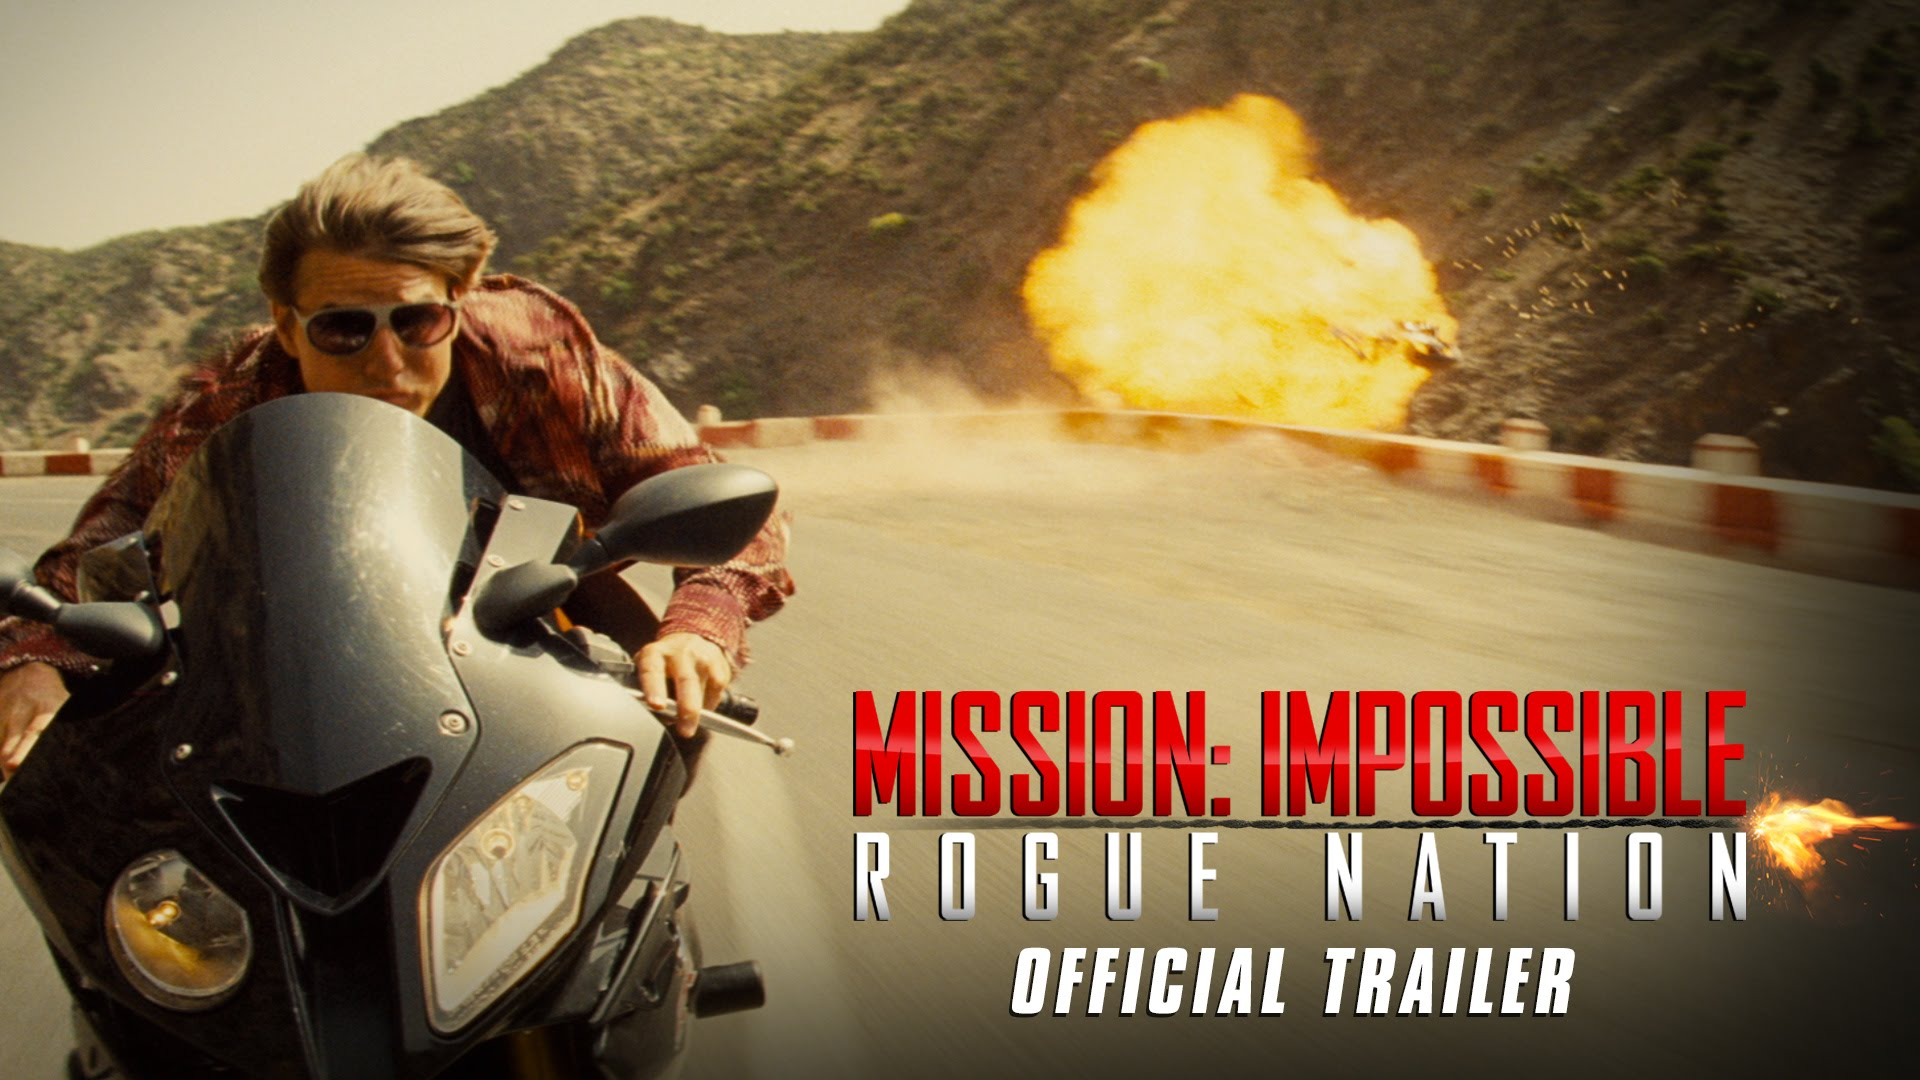 mission impossible rogue nation hd wallpaper download. Black Bedroom Furniture Sets. Home Design Ideas